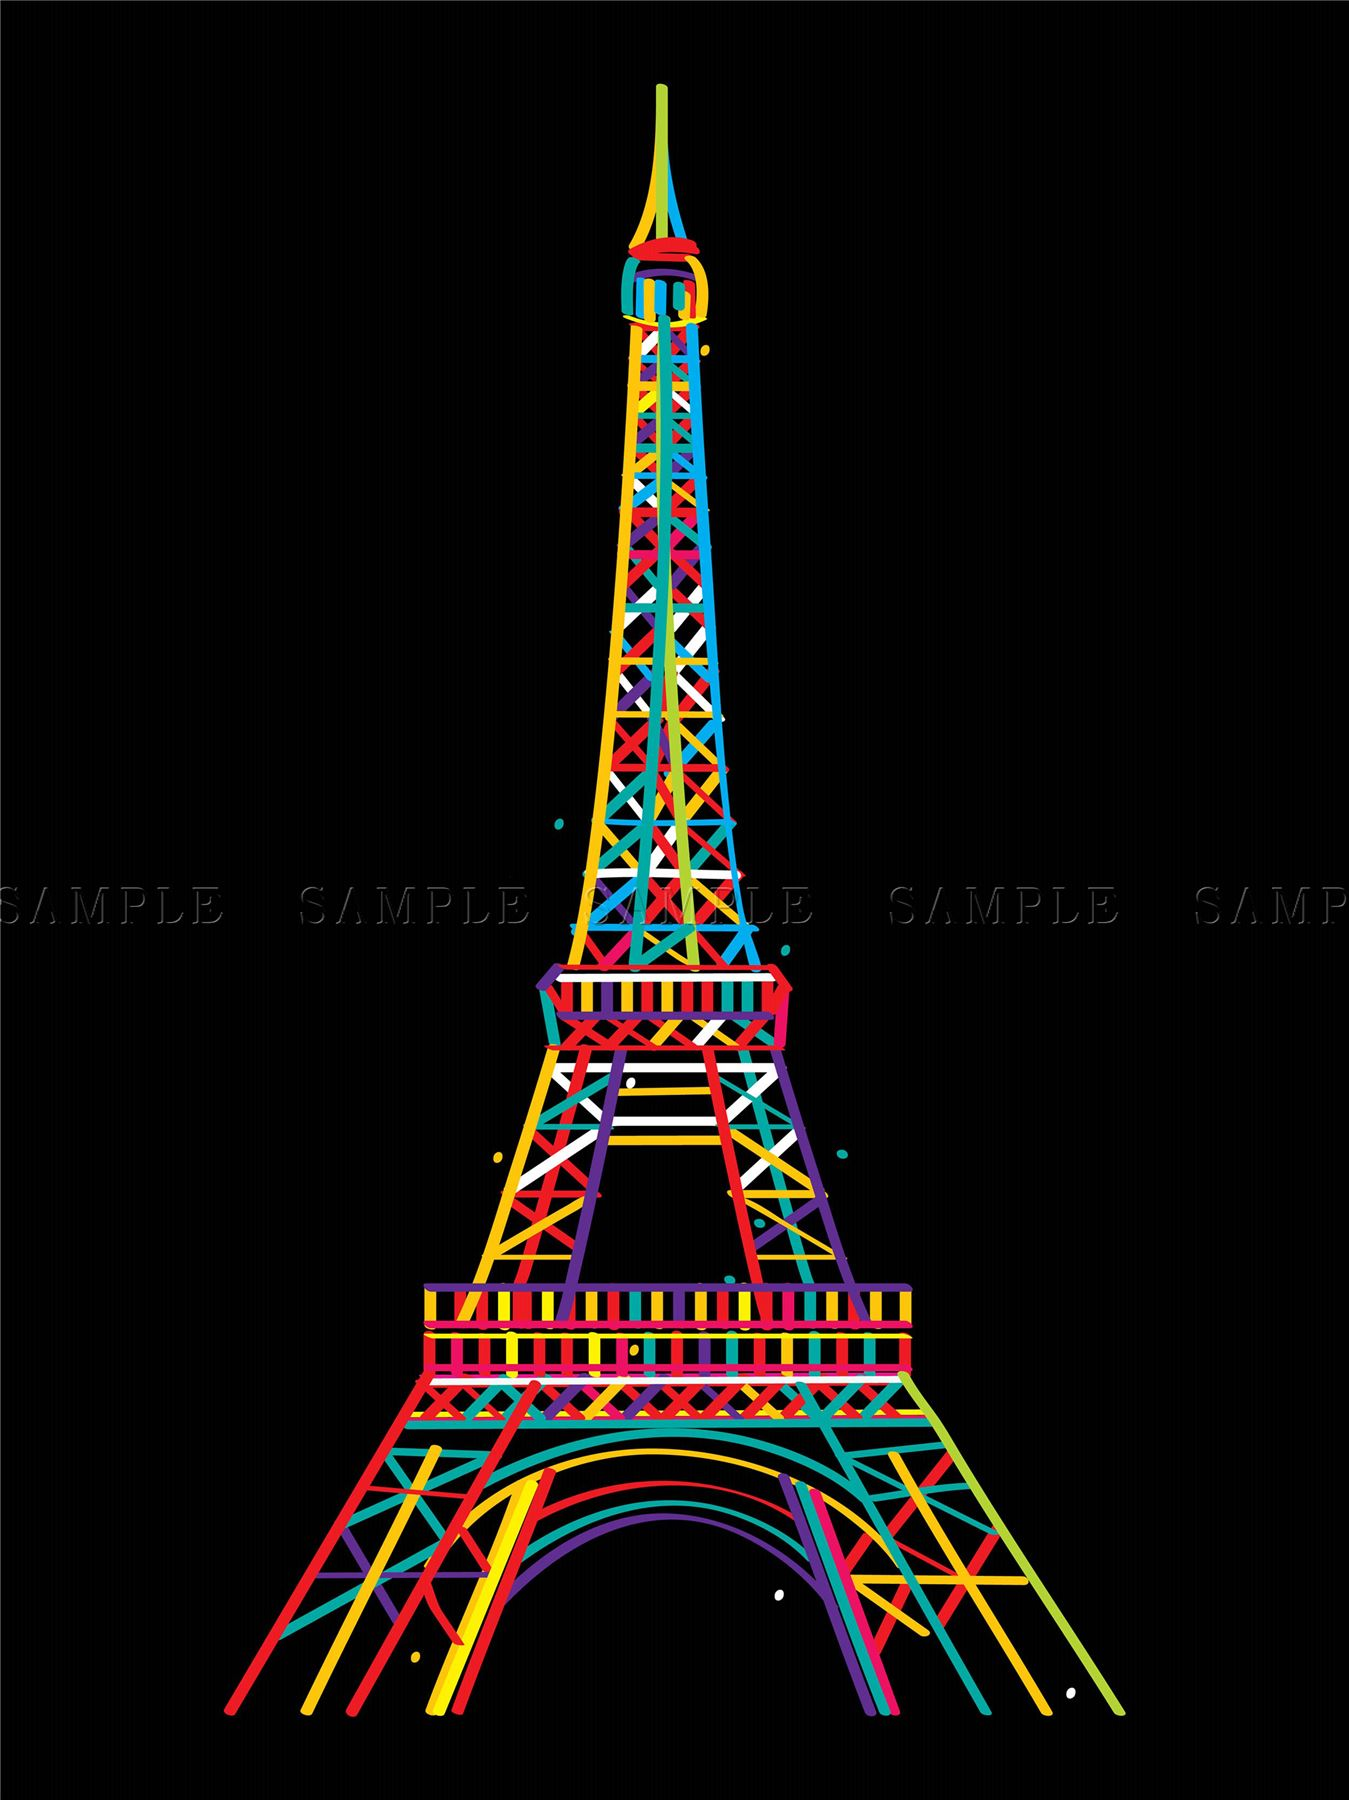 peinture dessin monument tour eiffel paris couleurs art. Black Bedroom Furniture Sets. Home Design Ideas